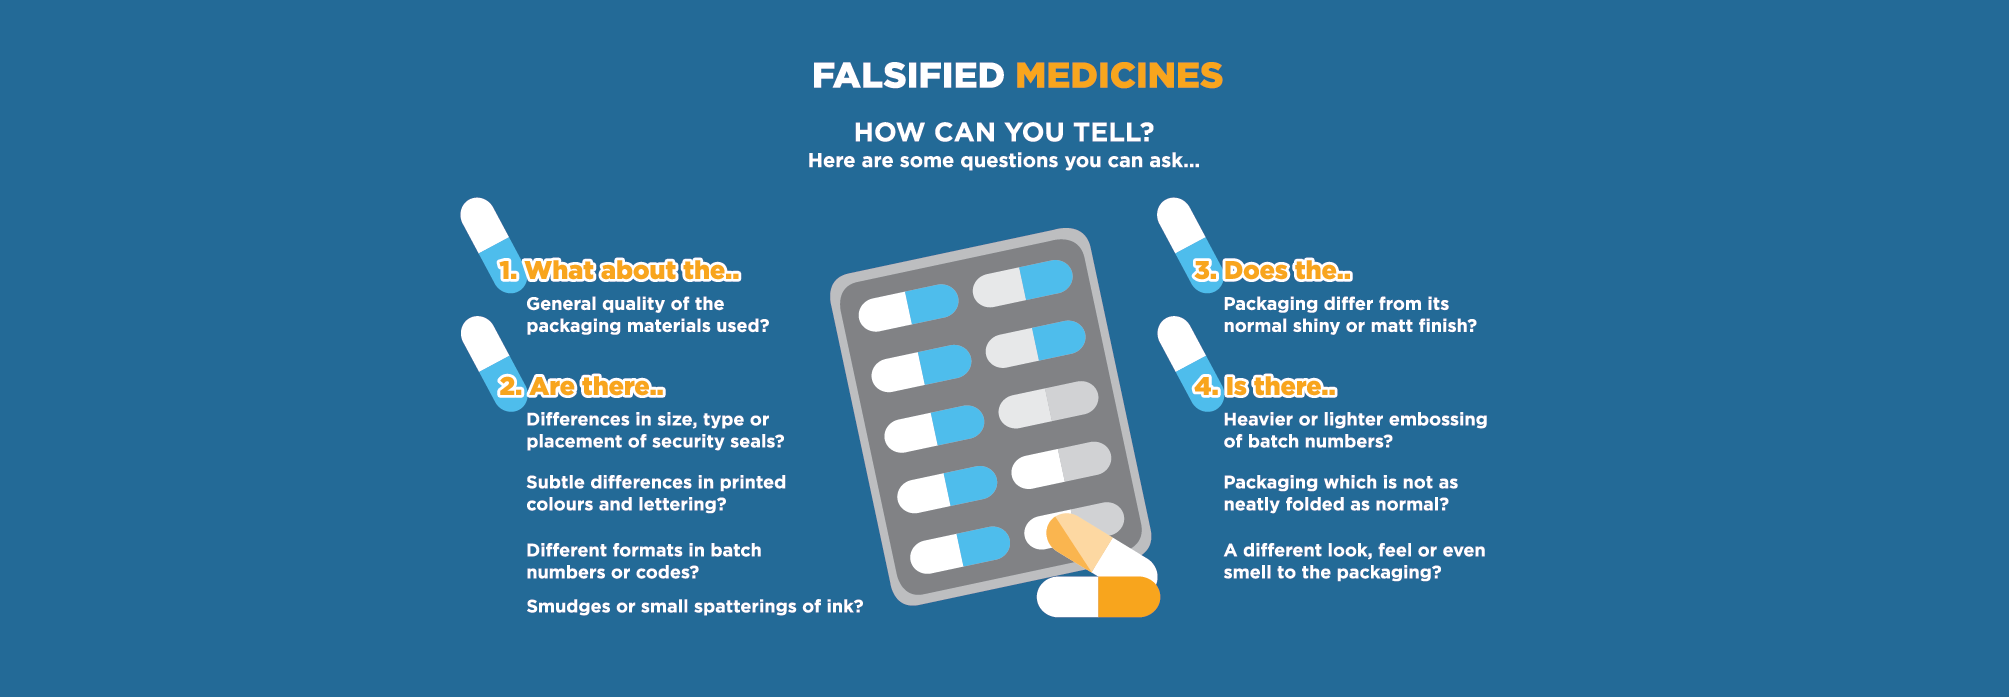 PMN Consulting Falsified Medicines Infographic